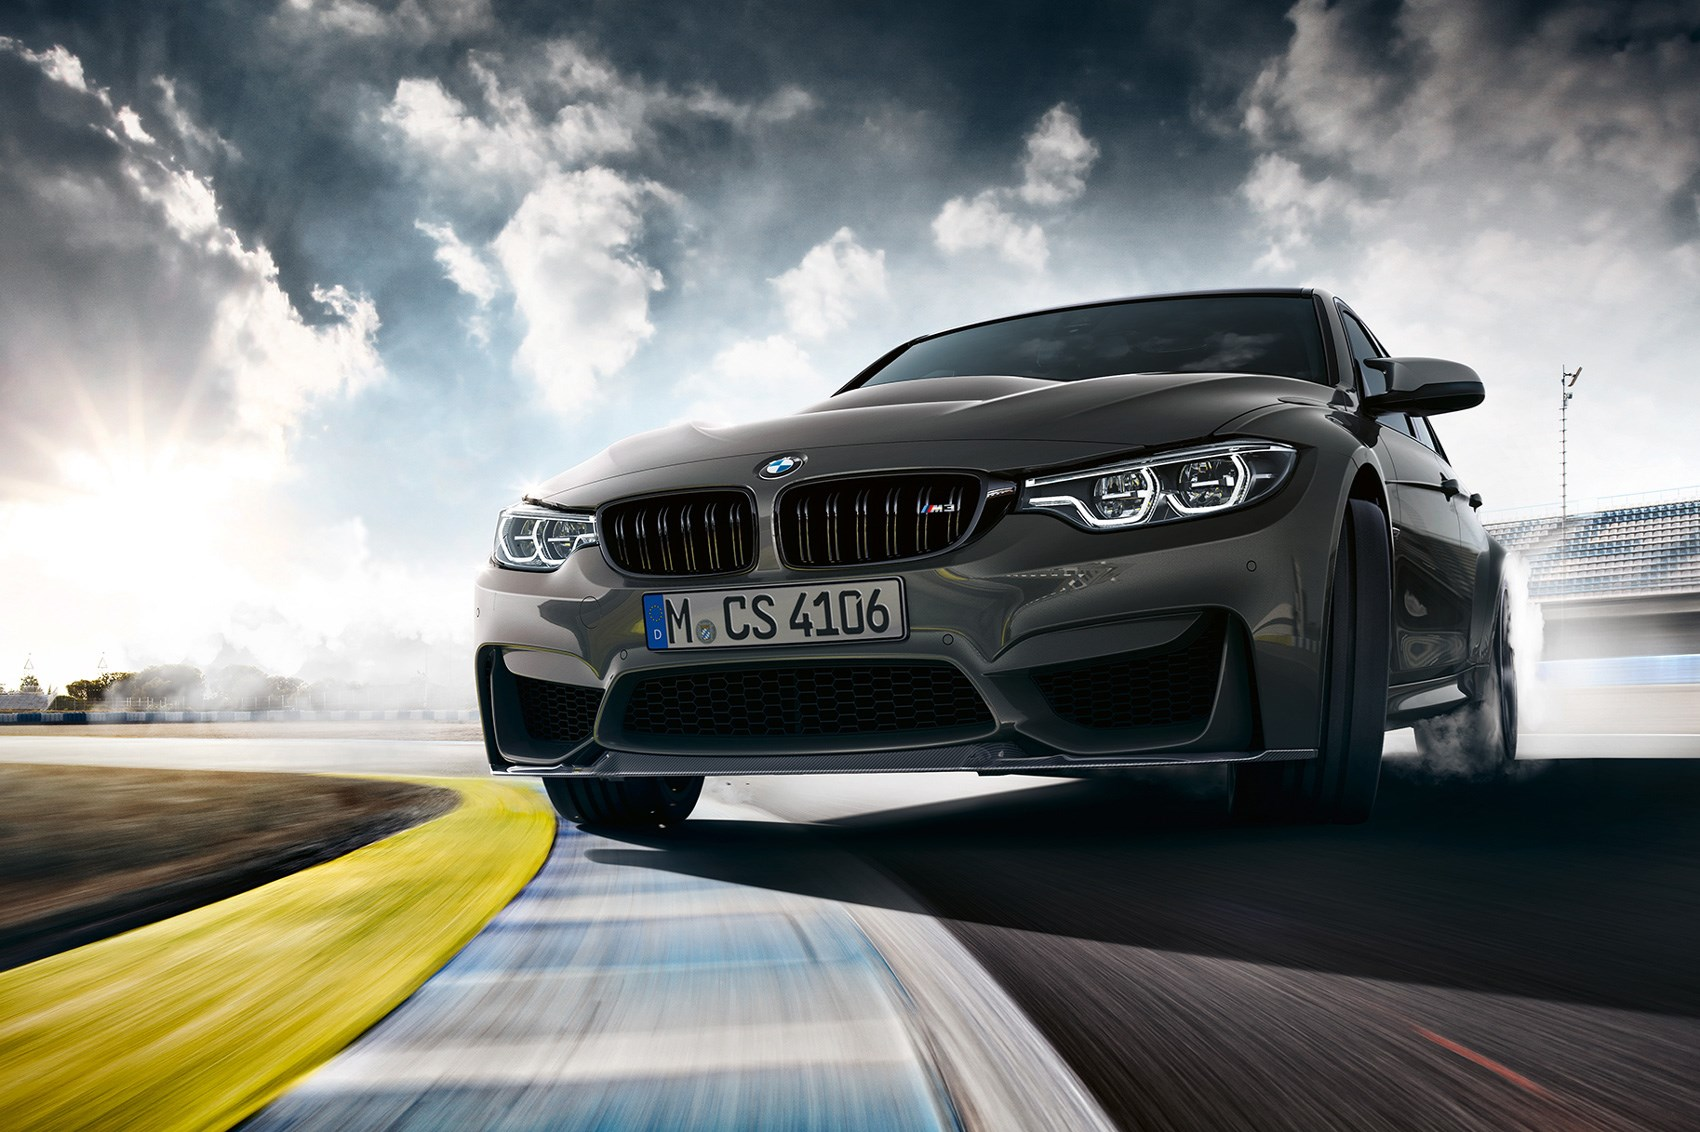 BMW M3 CS Revealed as the Most Powerful M3 to Date